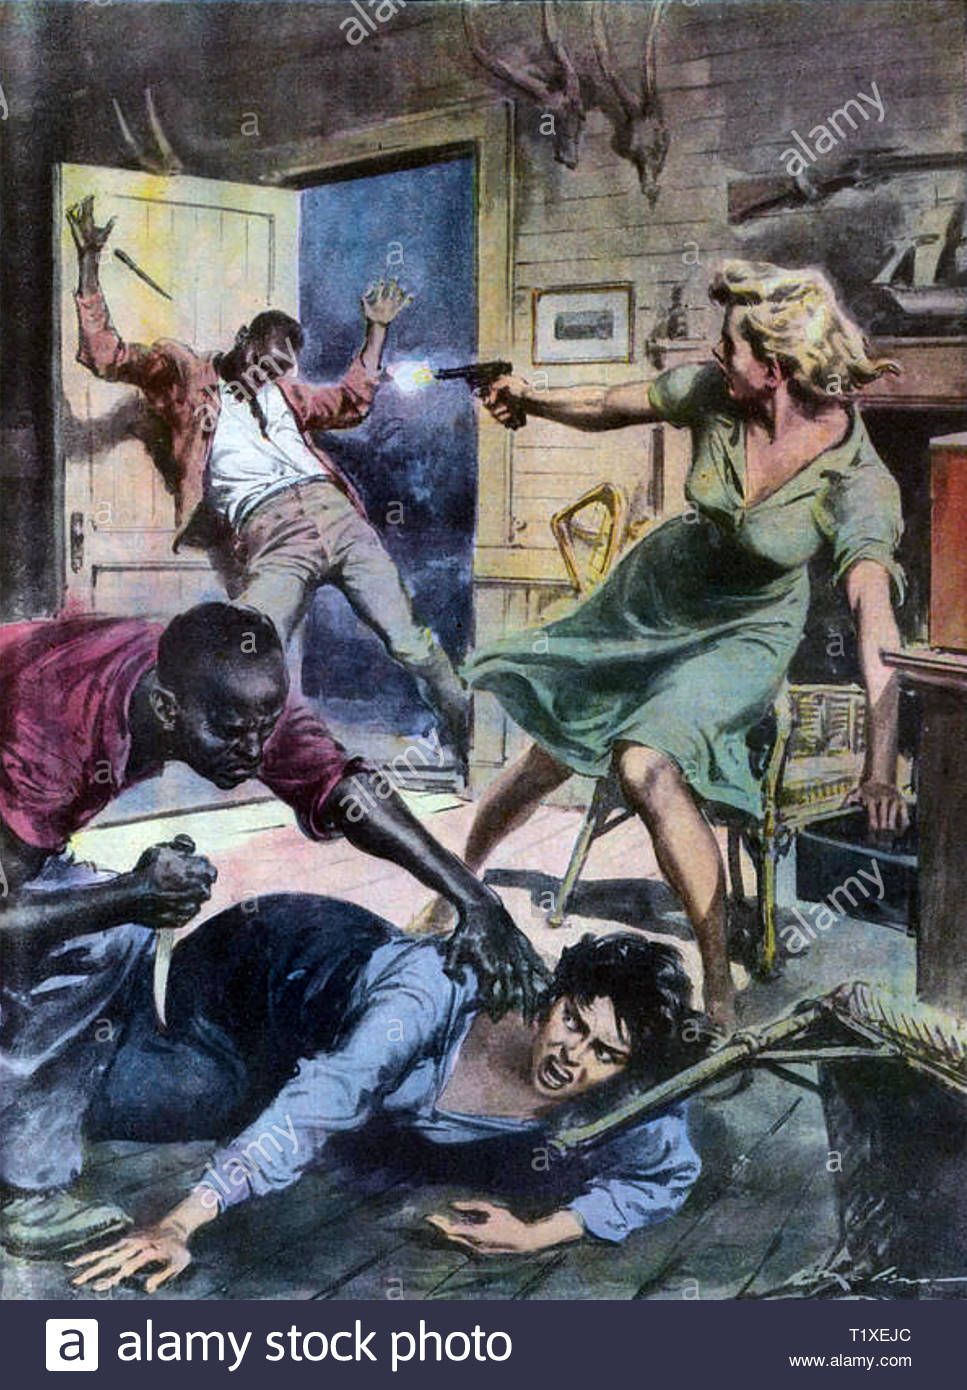 mau mau uprising 1952 1960 italian magazine illustration of kitty heselburger at right and her friend defending themselves against attack in 1953